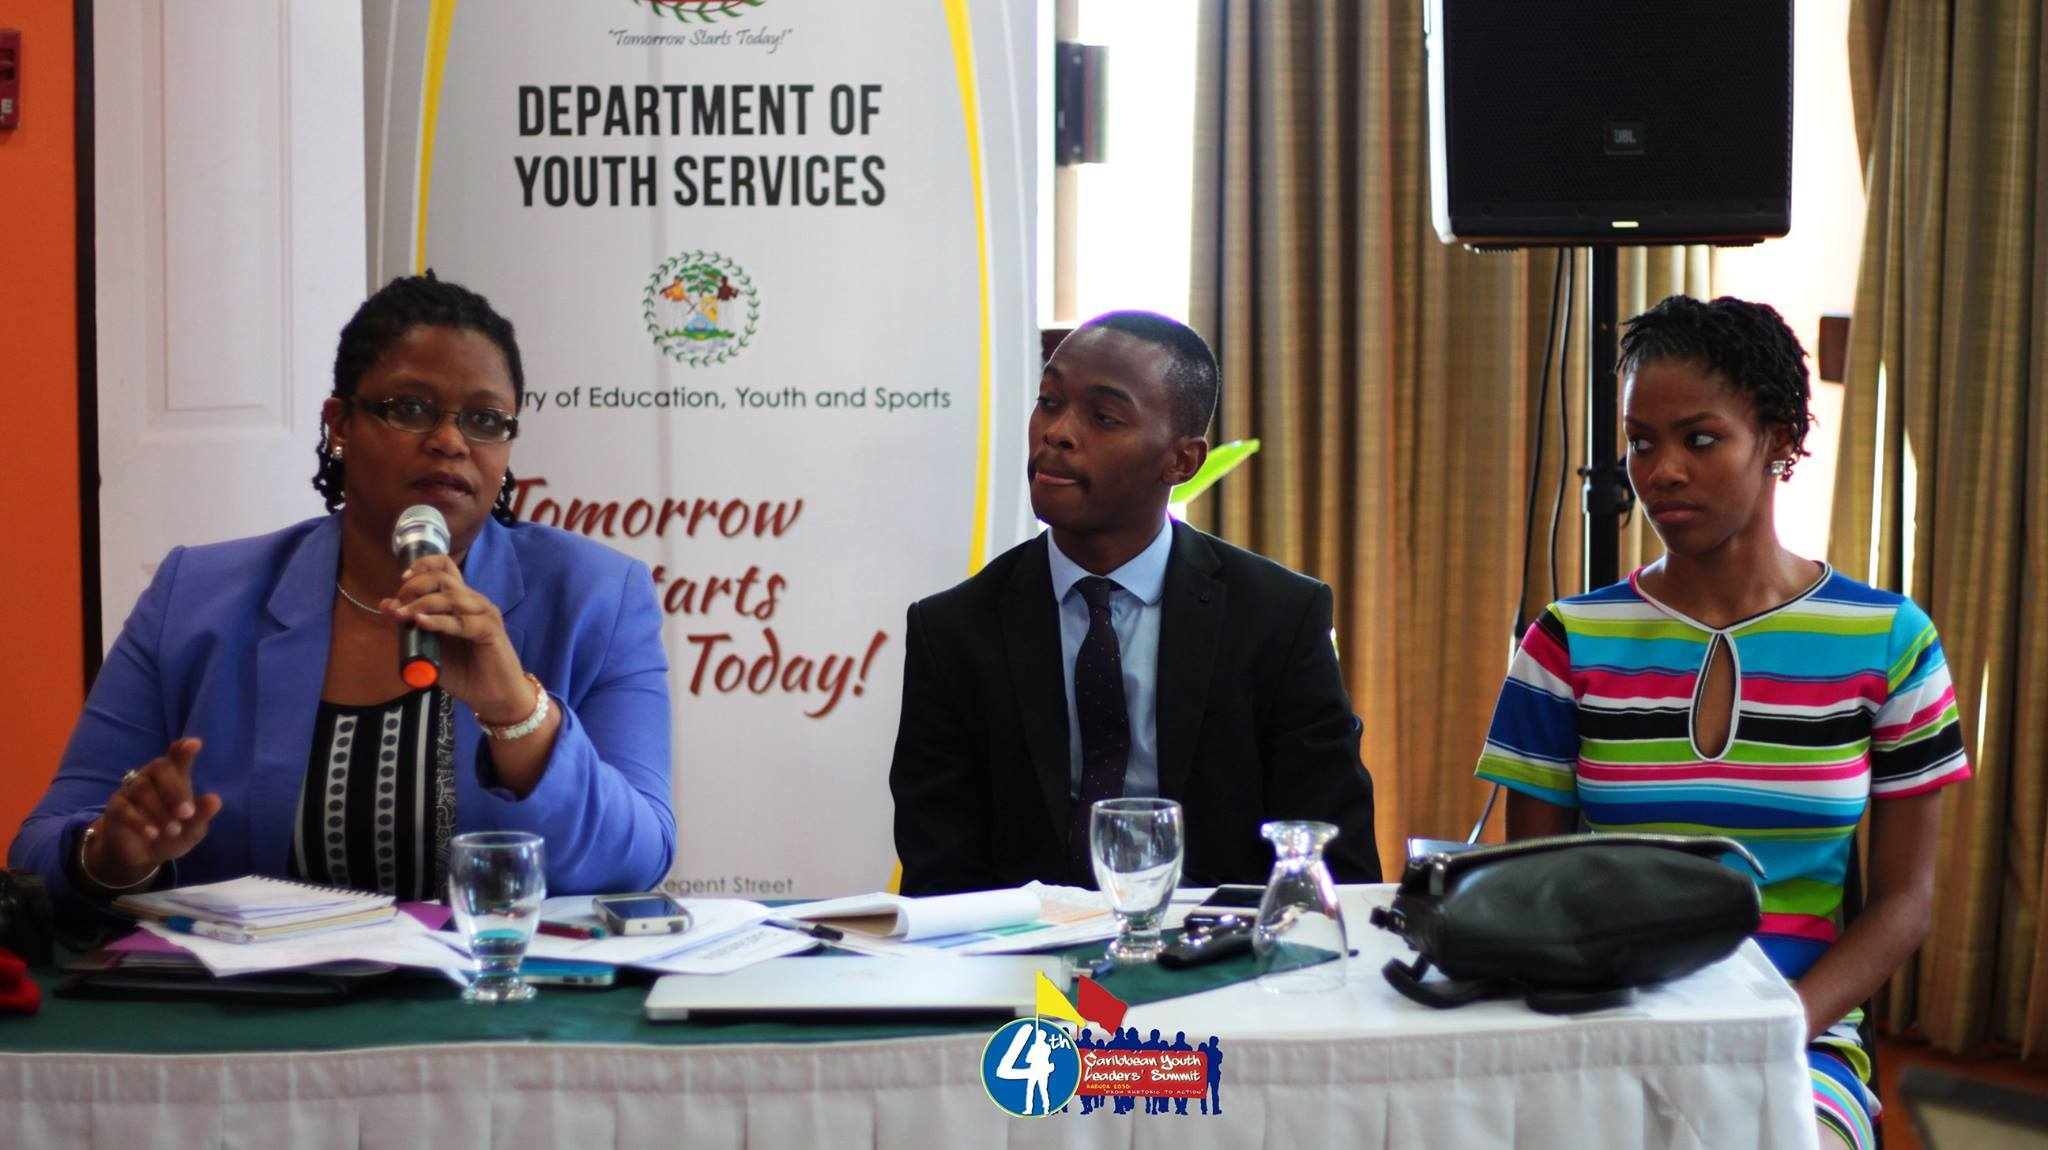 Programme Manager for Culture and Community Development at the CARICOM Secretariat Dr. Hilary Brown answering questions during the Caribbean Youth Leaders' Summit in Belize